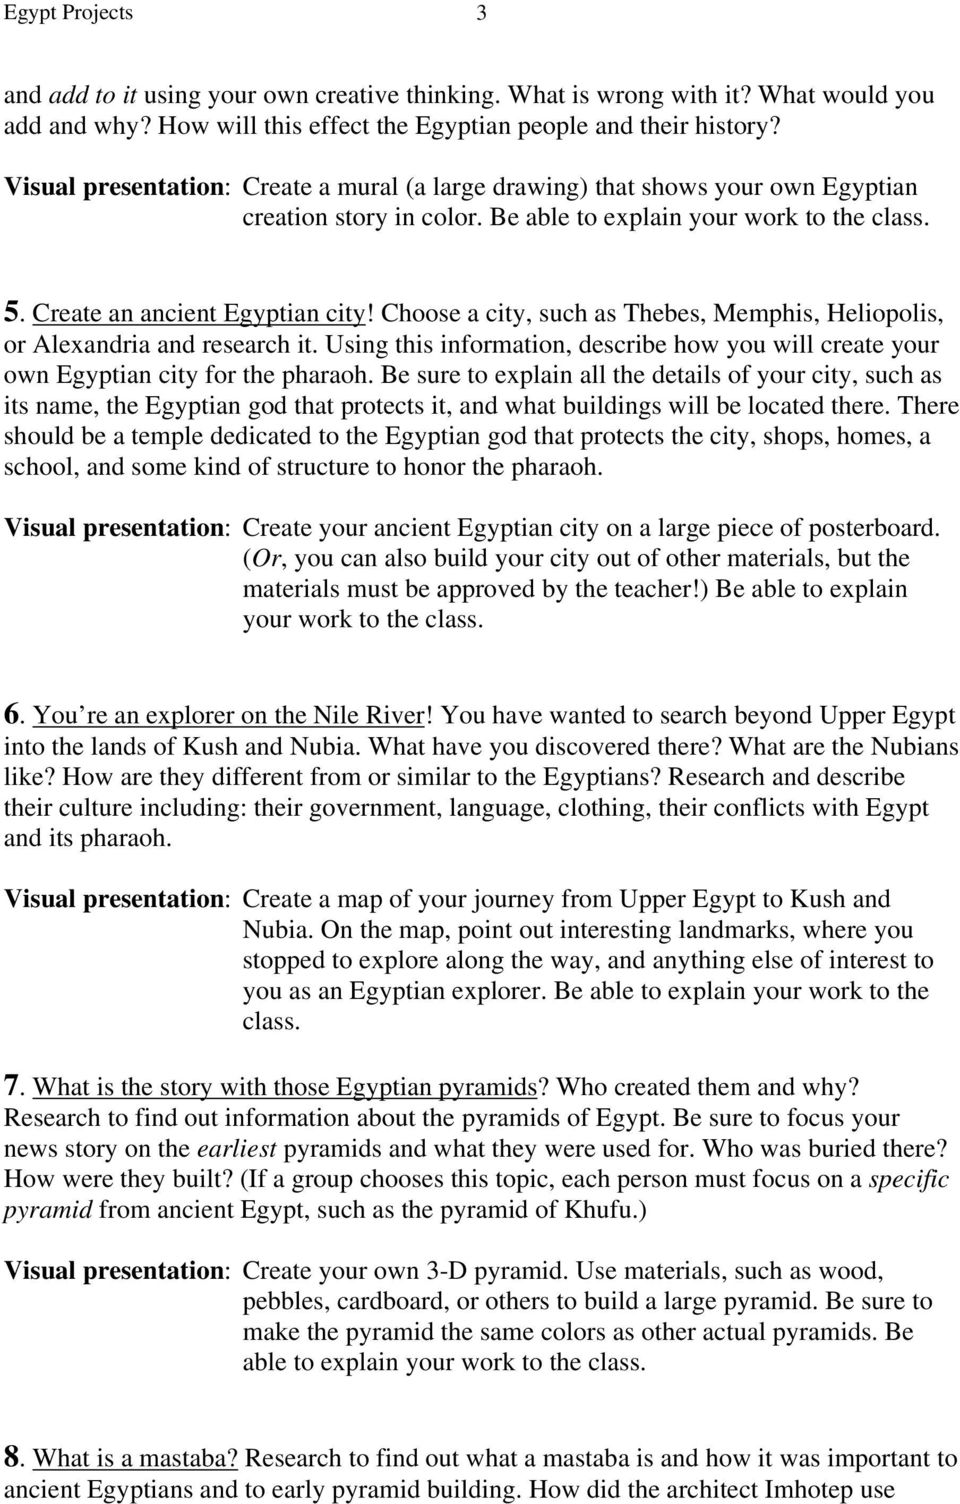 Choose a city, such as Thebes, Memphis, Heliopolis, or Alexandria and research it. Using this information, describe how you will create your own Egyptian city for the pharaoh.